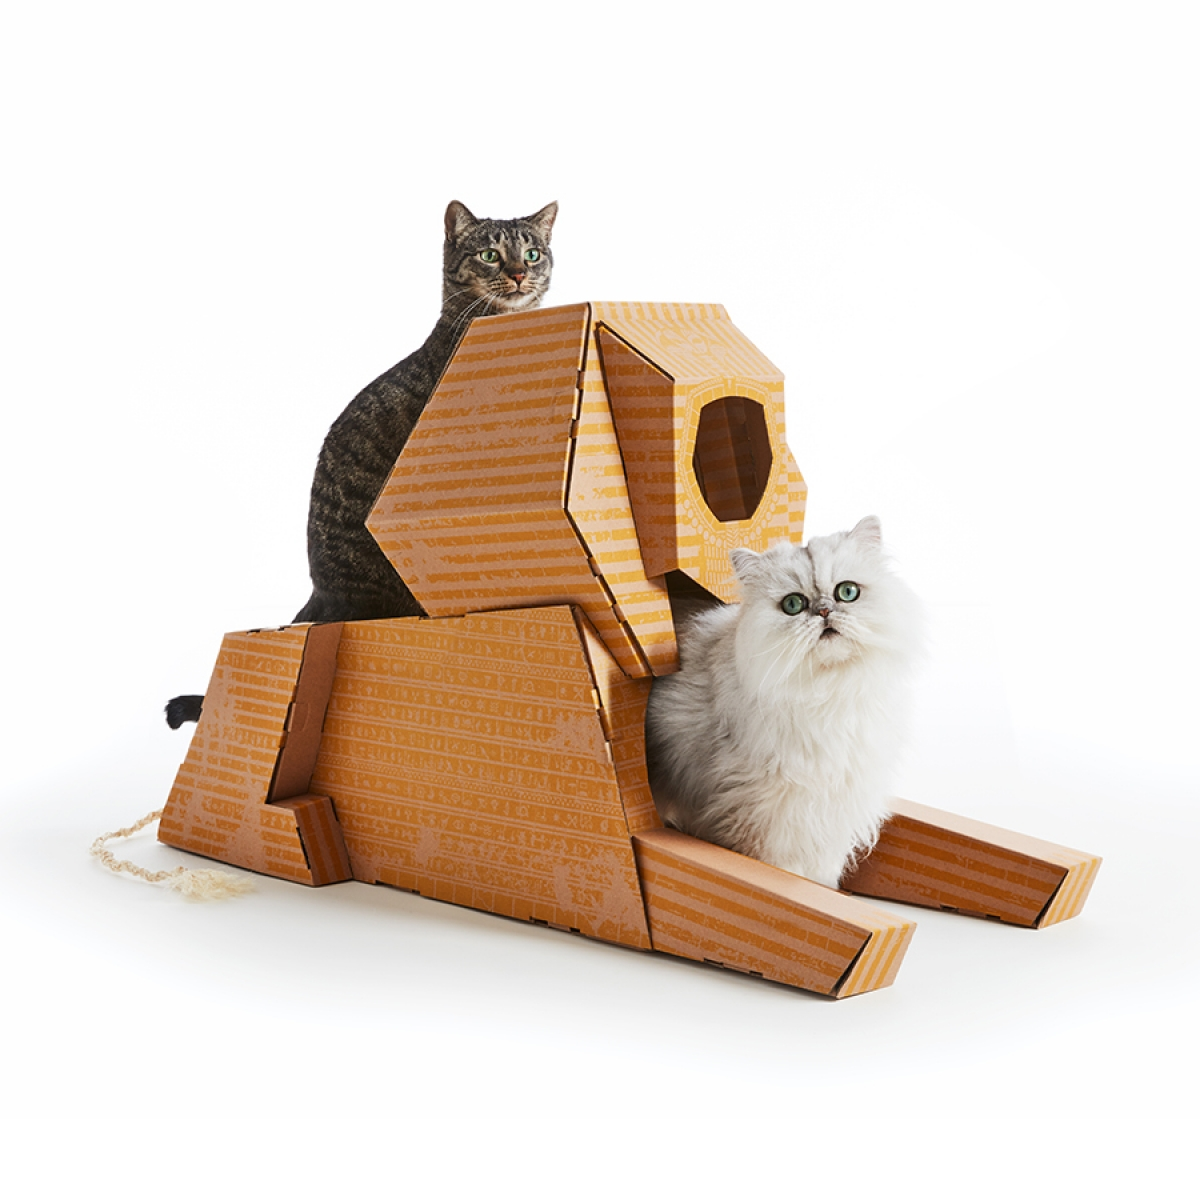 Miniature cardboard landmark architecture for cats